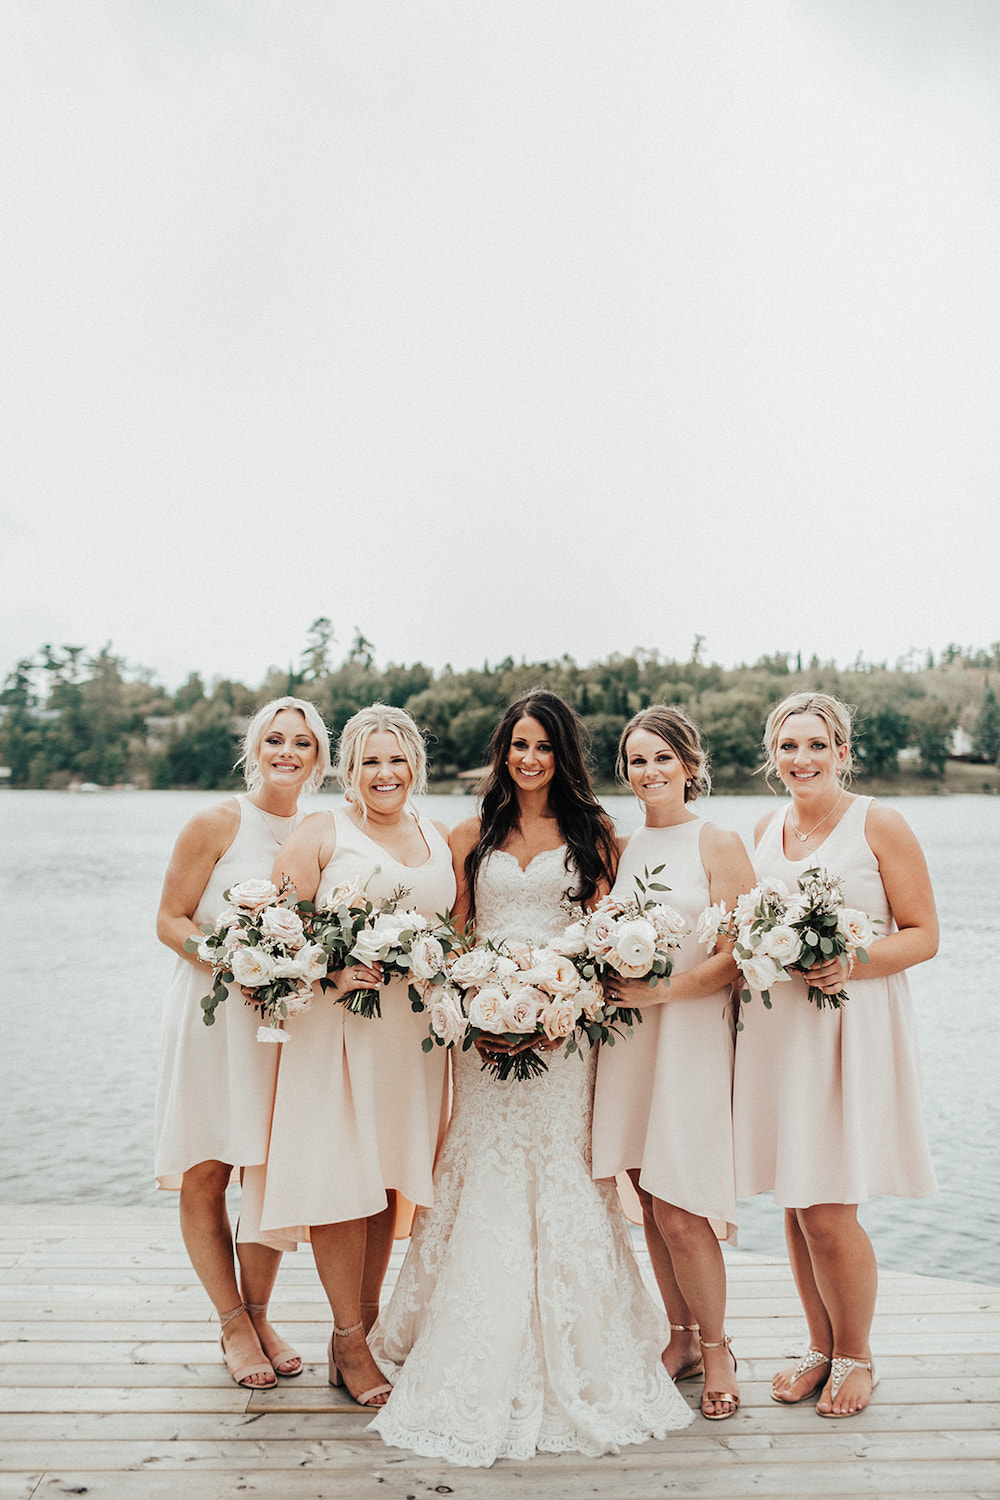 Blush Bridesmaid Dresses - Elegant Wedding at the Lake